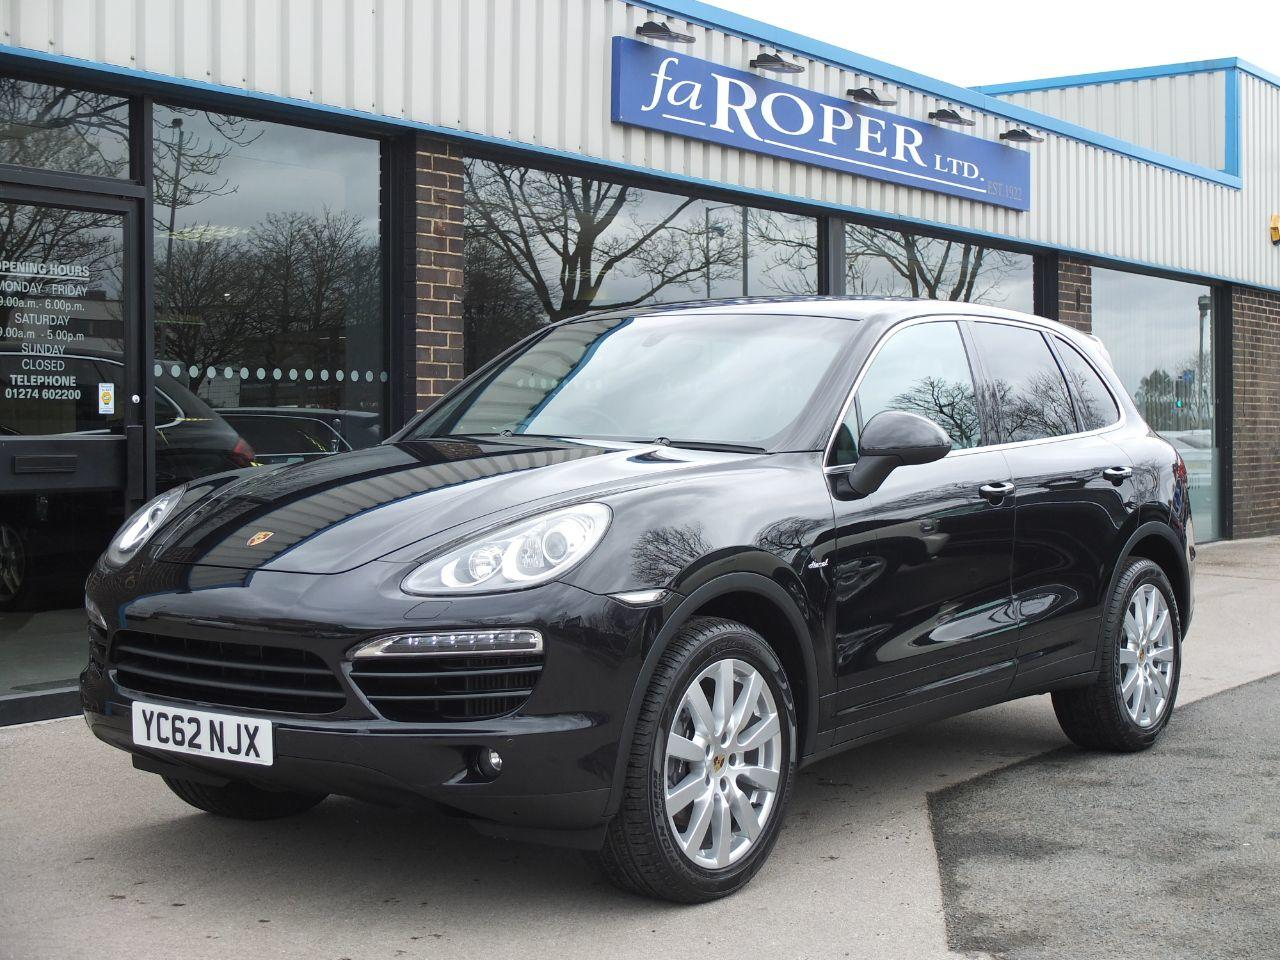 Porsche Cayenne 3.0 Diesel [245] Tiptronic S Estate Diesel Jet Black MetallicPorsche Cayenne 3.0 Diesel [245] Tiptronic S Estate Diesel Jet Black Metallic at fa Roper Ltd Bradford